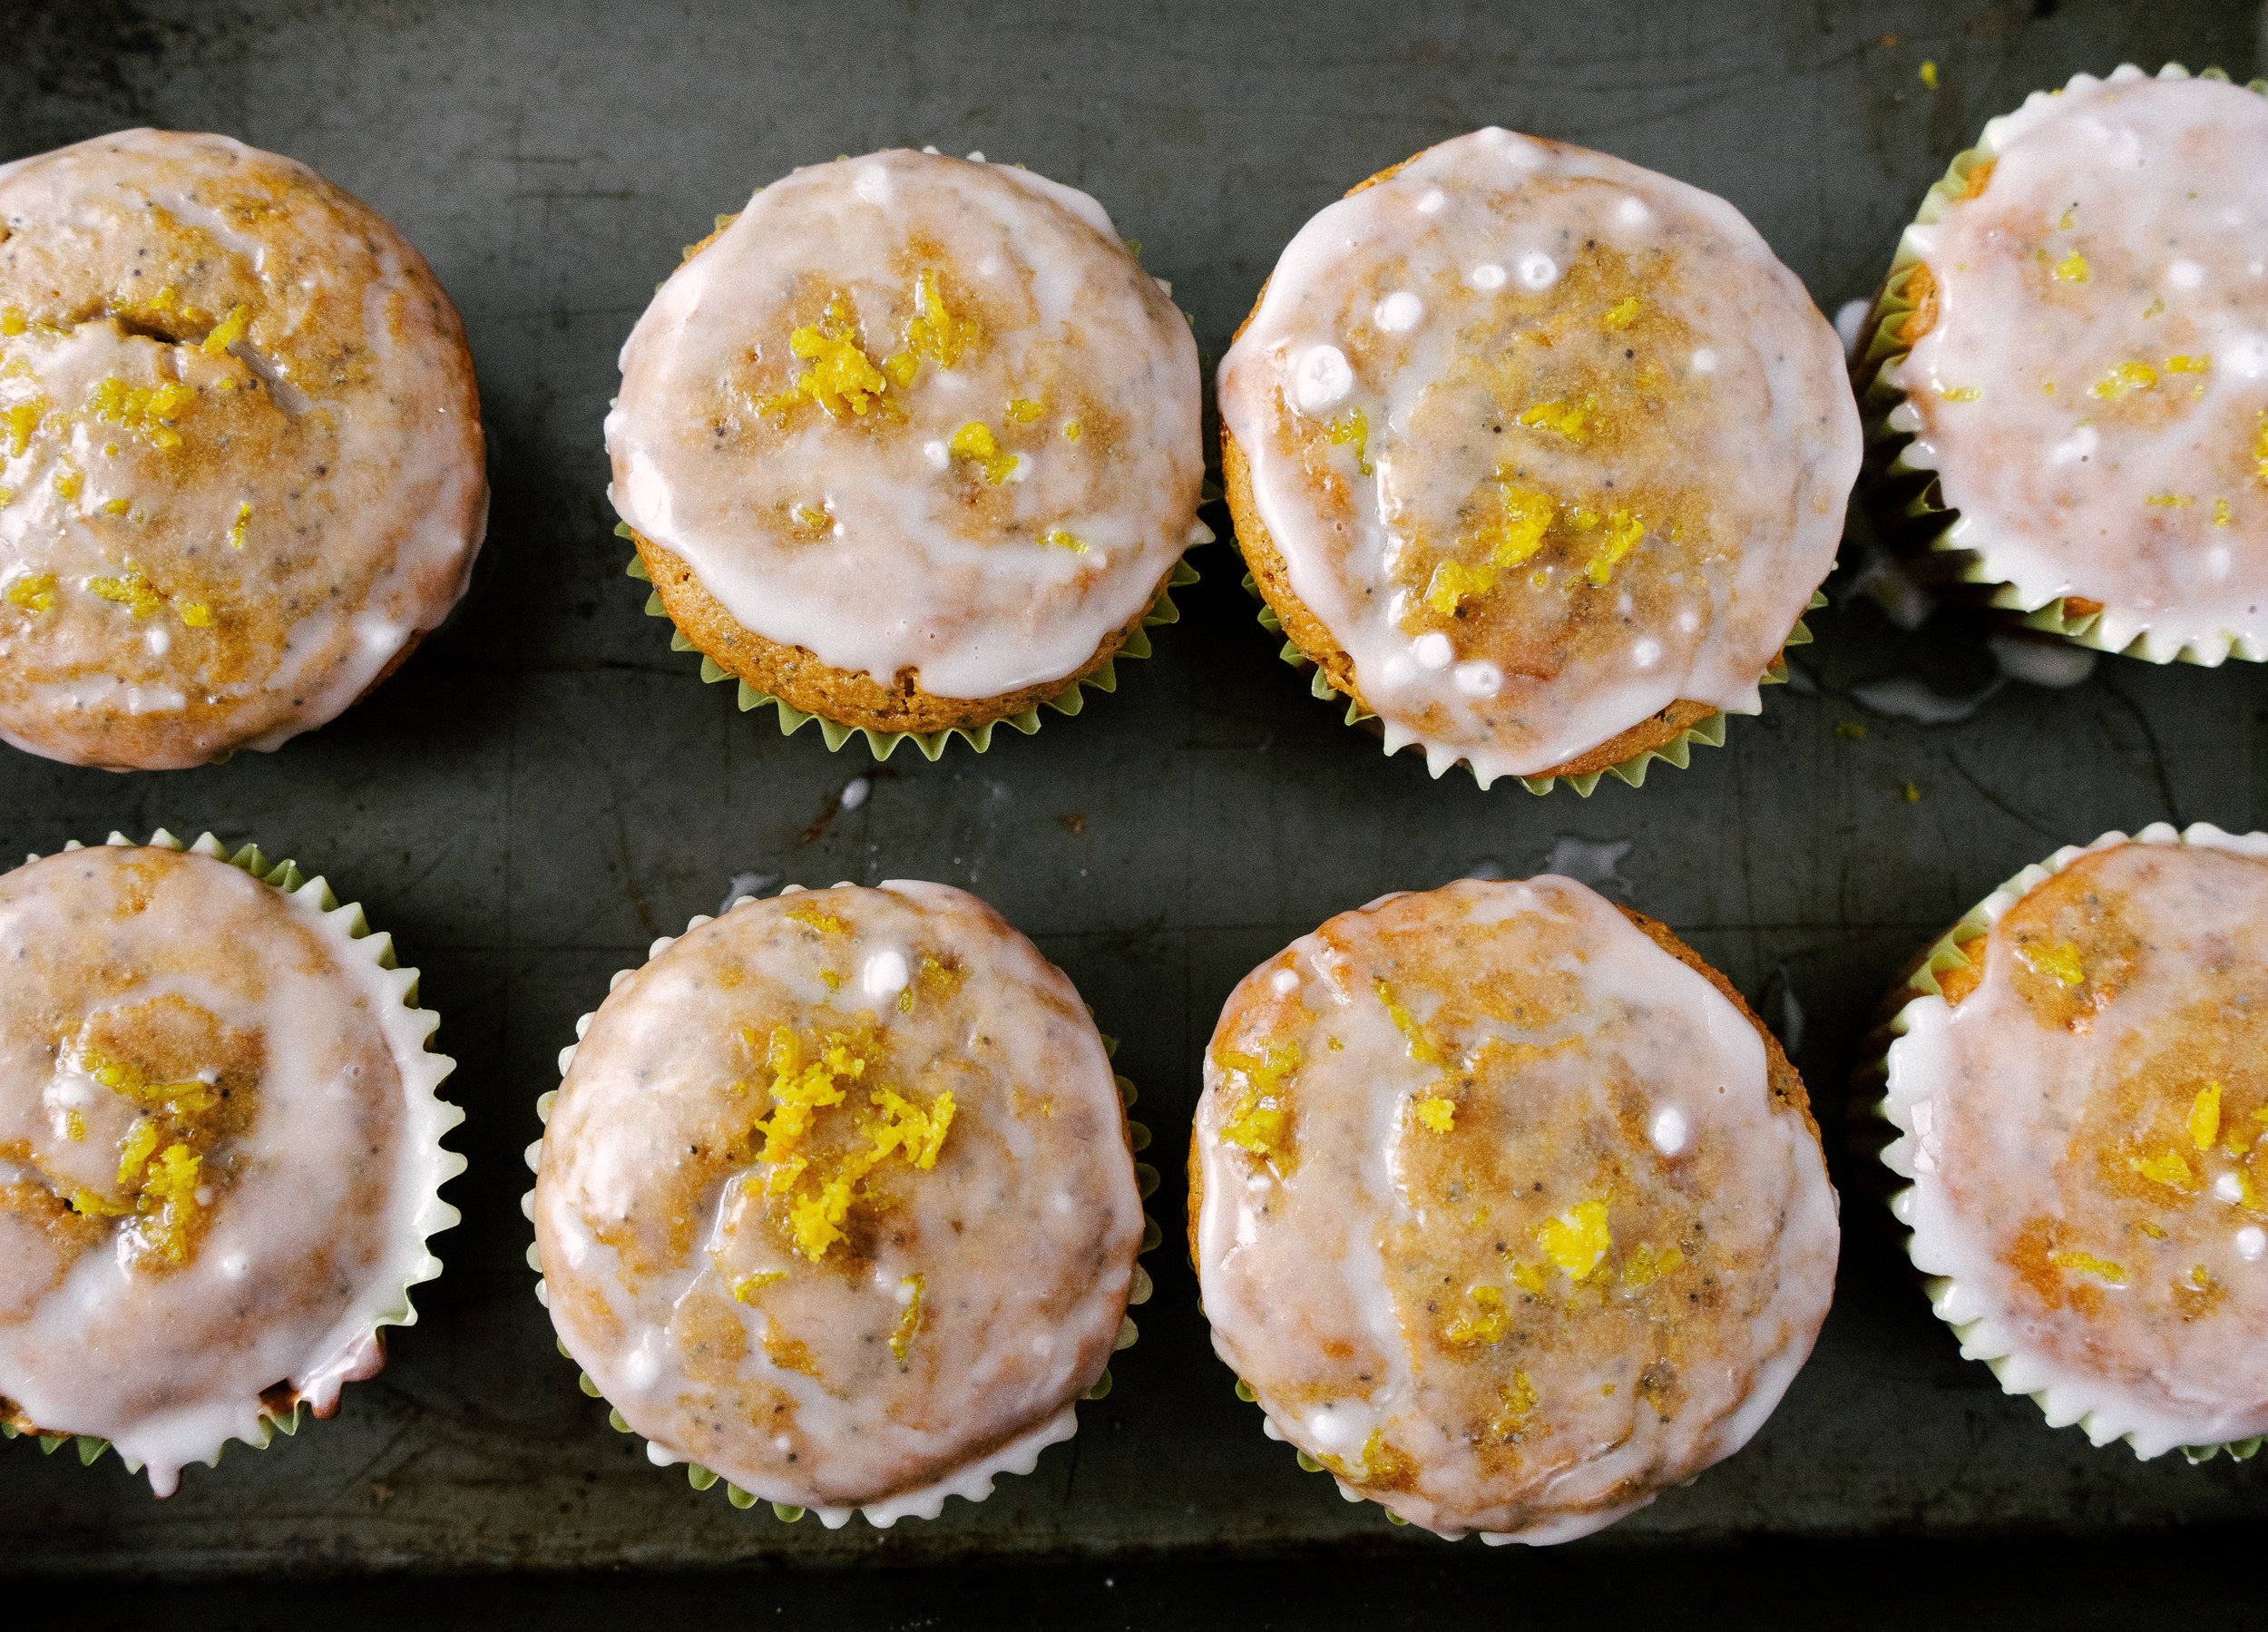 Bring on the spring flavors with these delicious, grain free lemon poppy seed muffins. Made with paleo ingredients these muffins are fluffy and packed with bright lemon flavor.